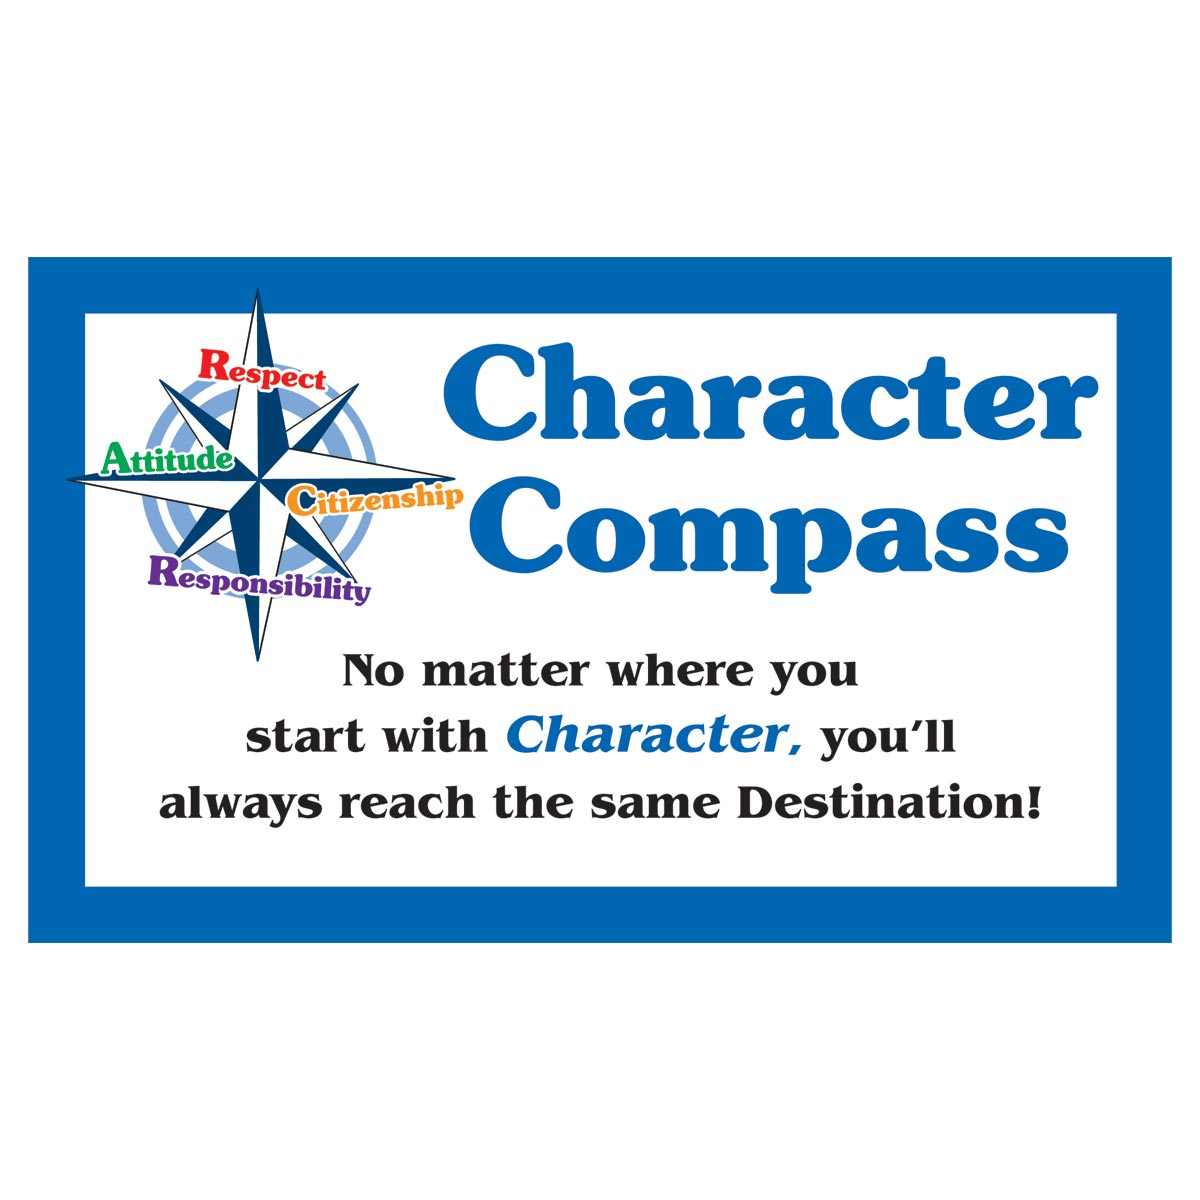 2009 - Character Compass banner